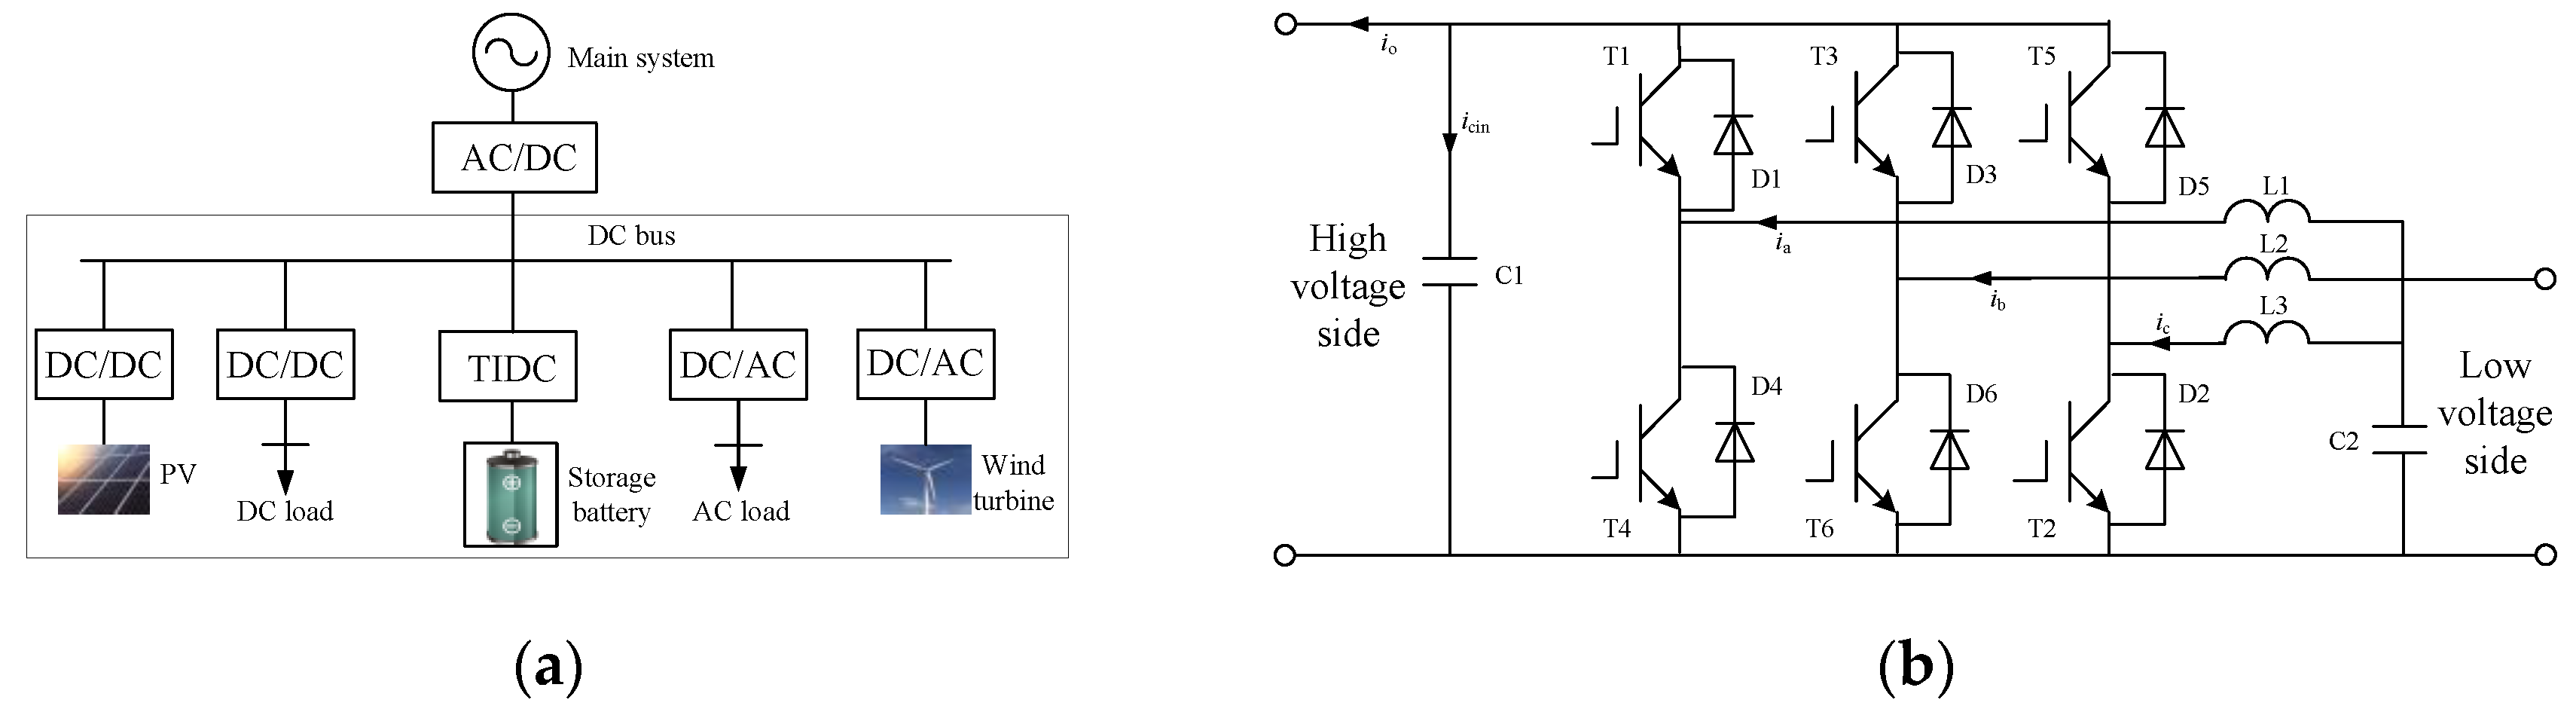 Energies Free Full Text A Feed Forward Control Realizing Fast Pictures Ac To Dc Converter Circuit Utilizing Igbt S For 09 00529 G001 1024